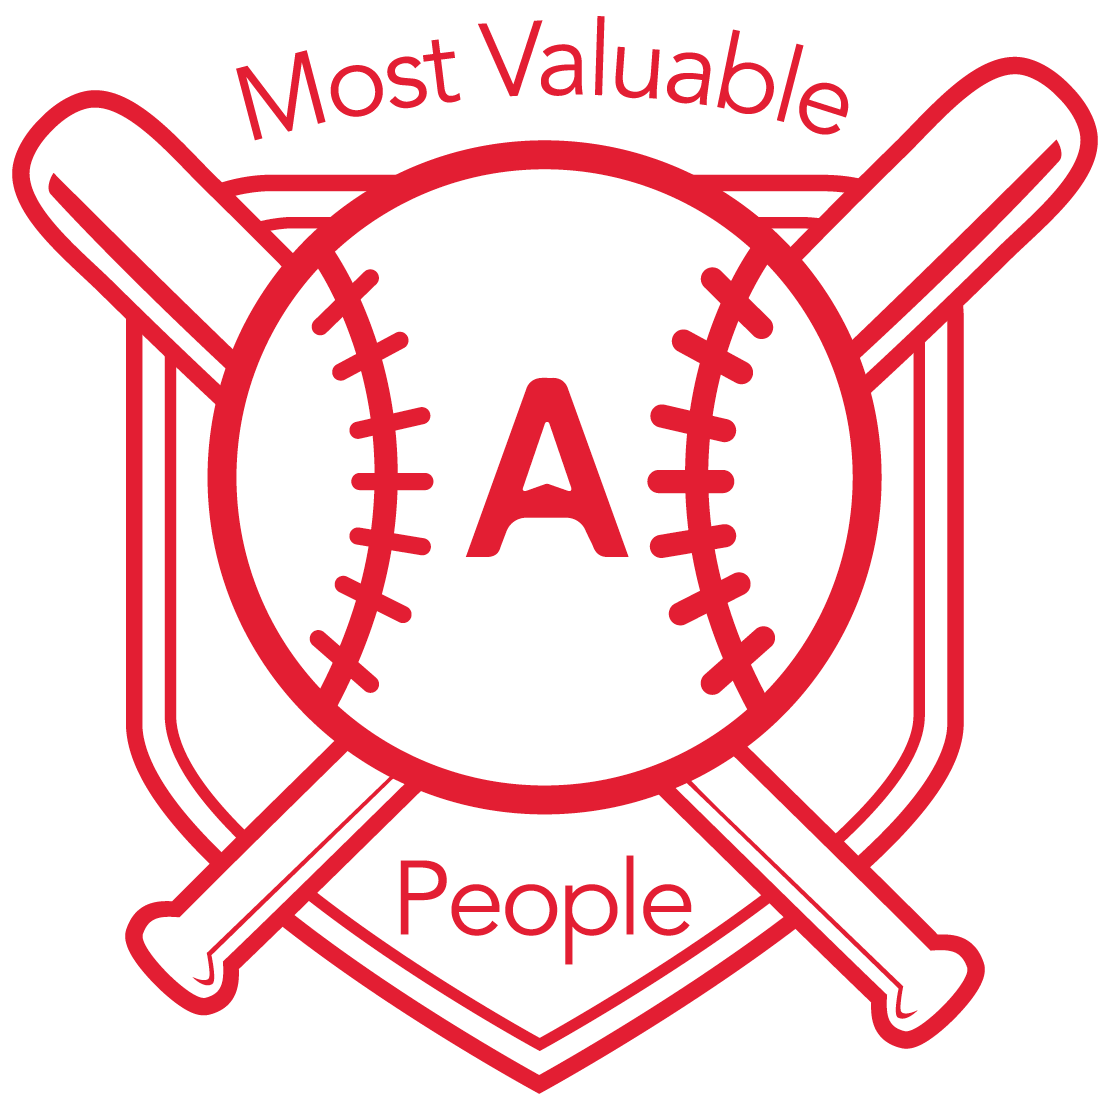 Most Valuable People